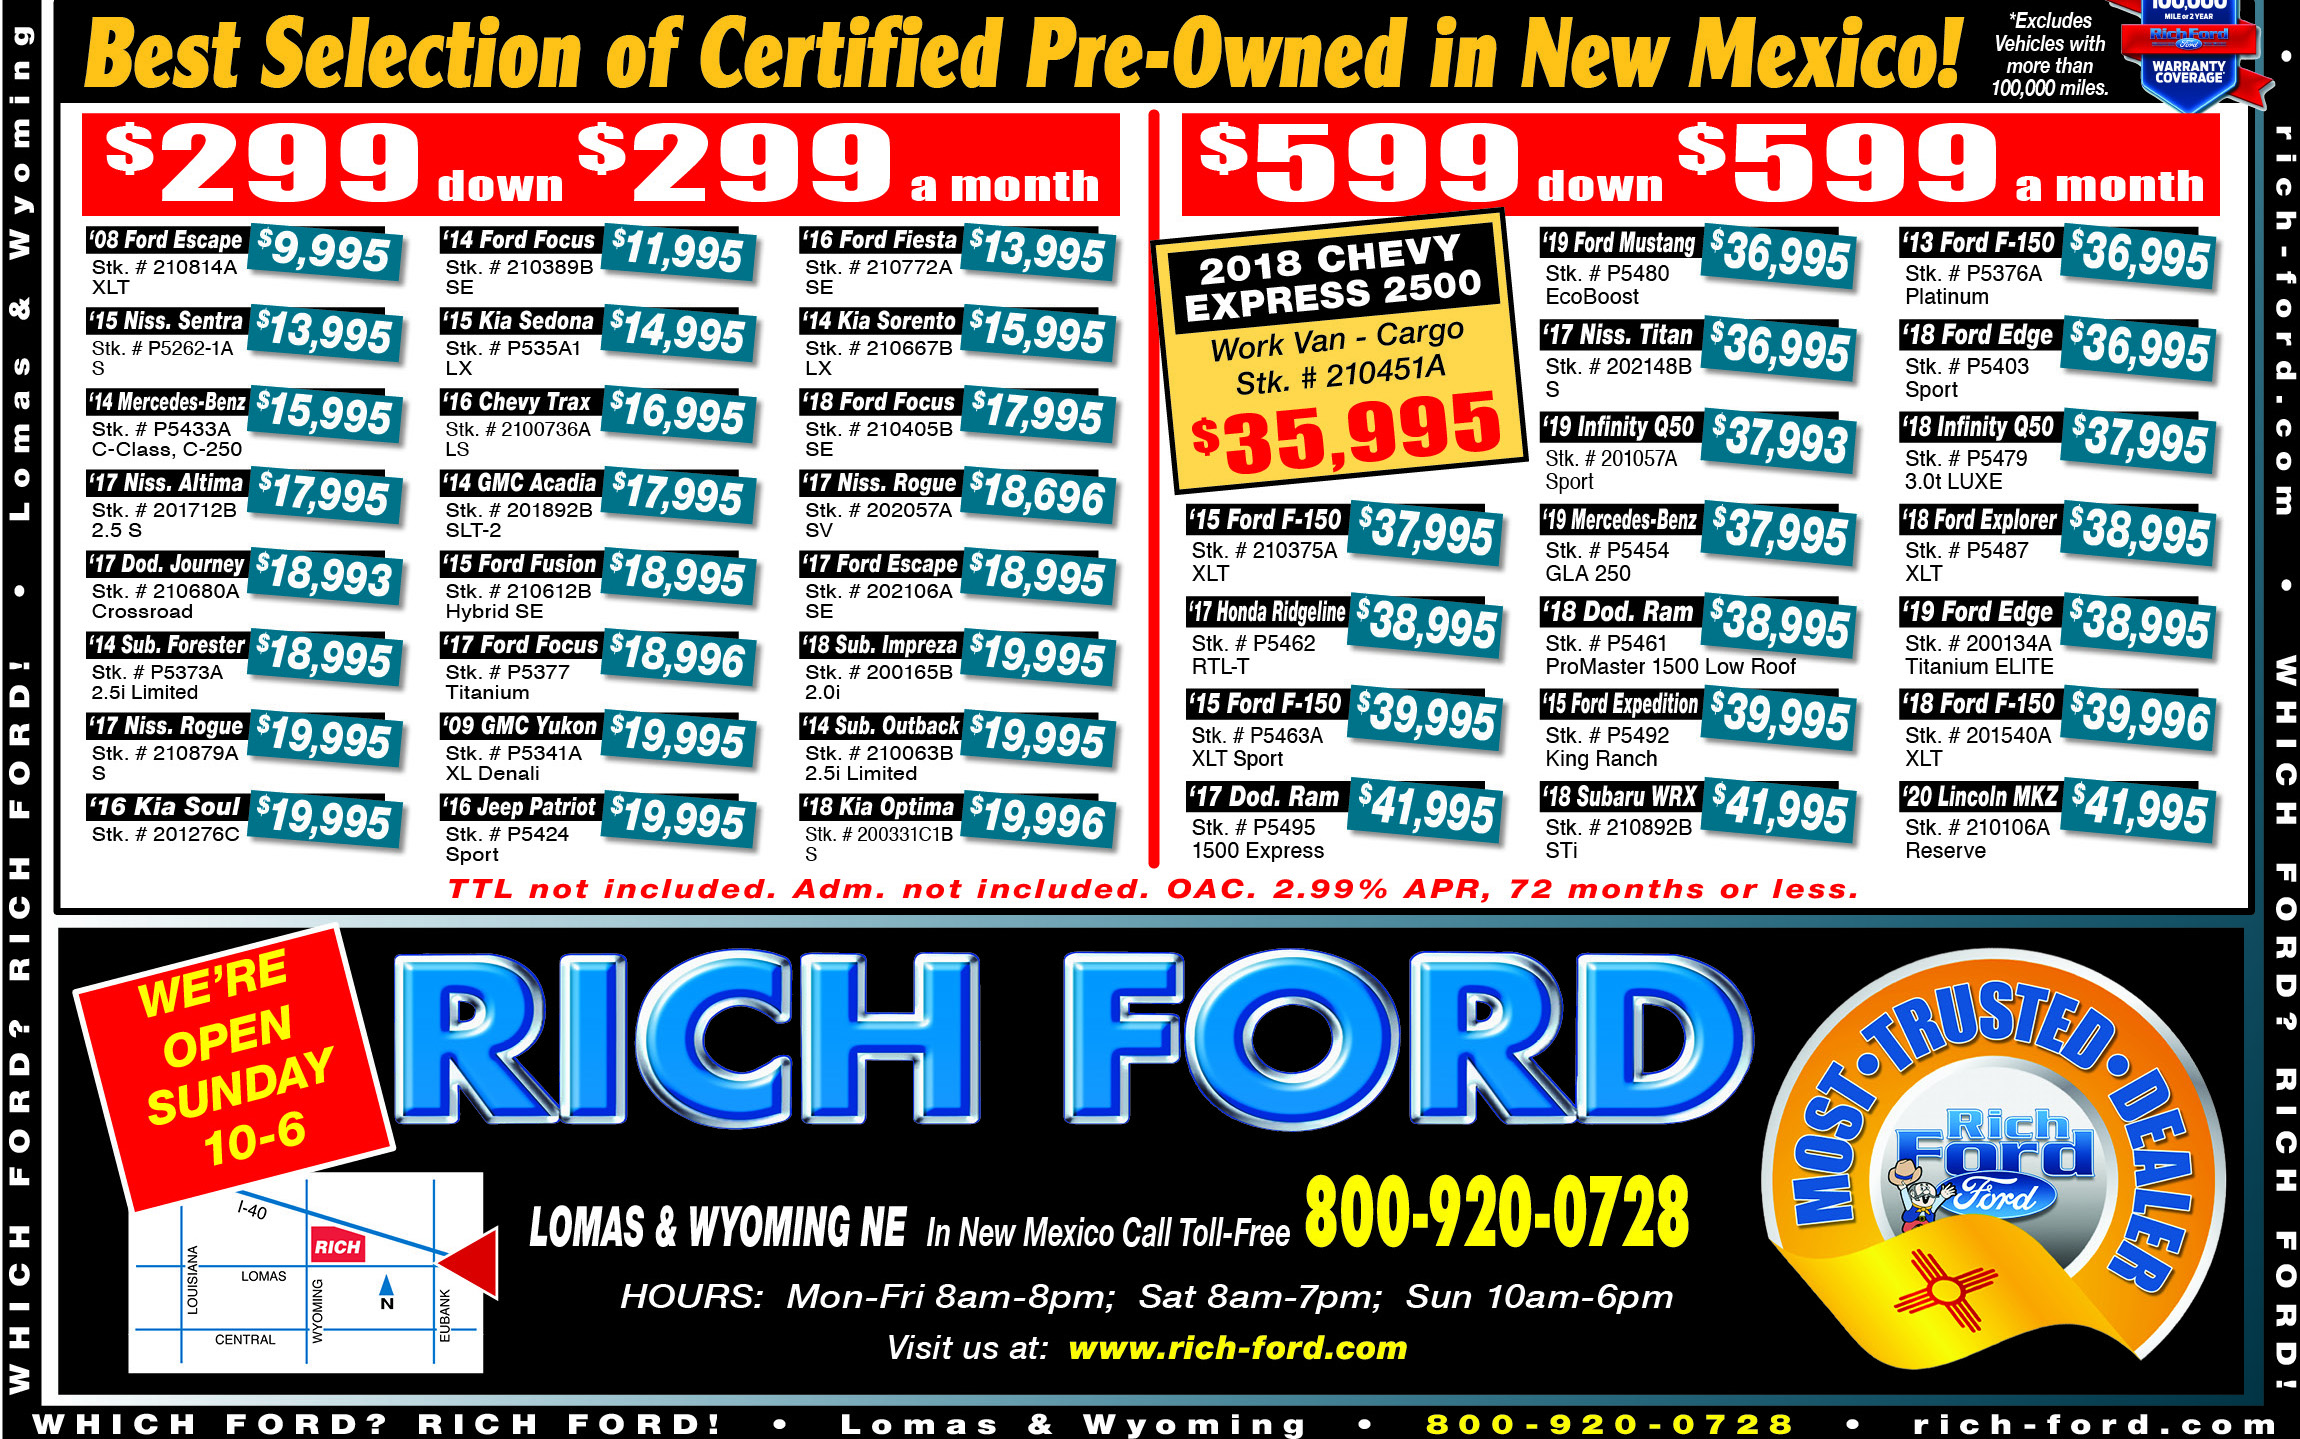 Rich Ford Used Vehicle Weekly Specials